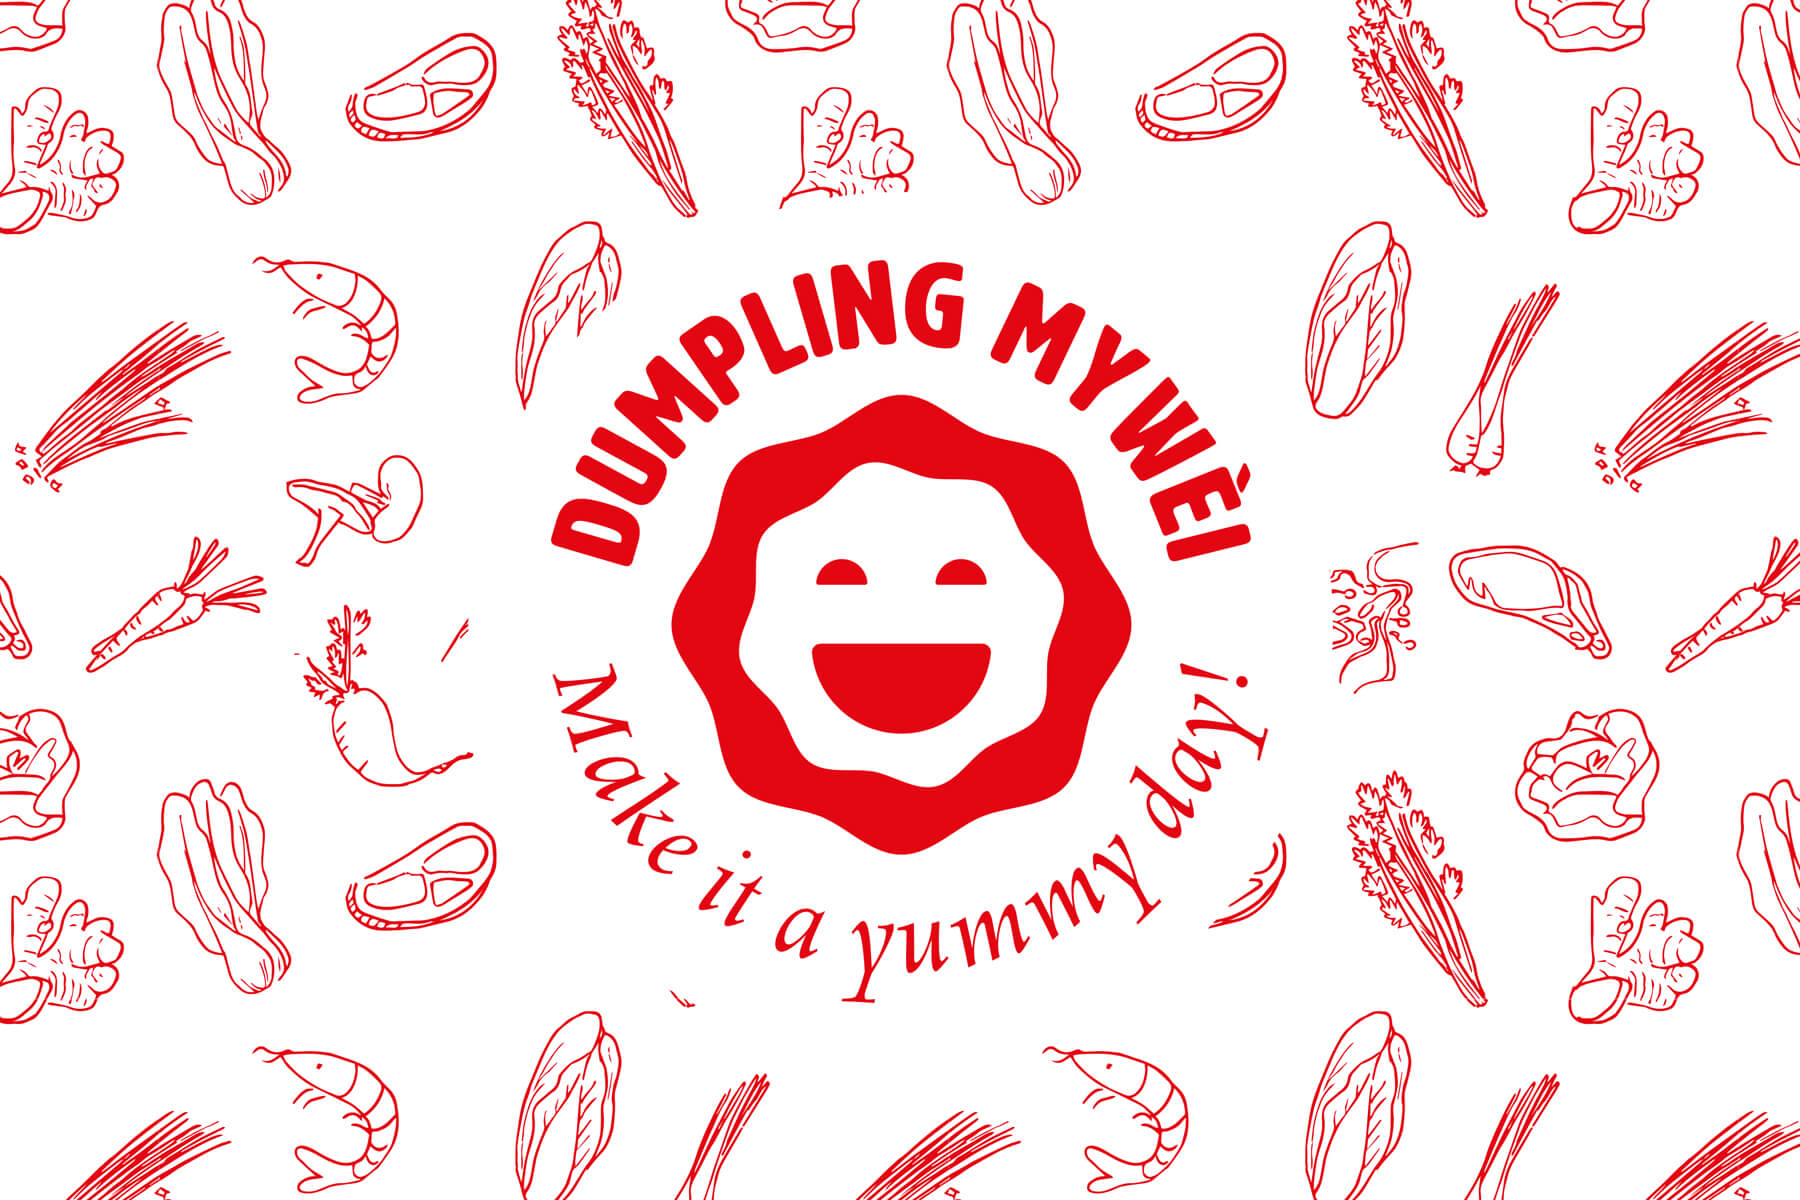 Dumpling Mywèi: make it a yummy day!